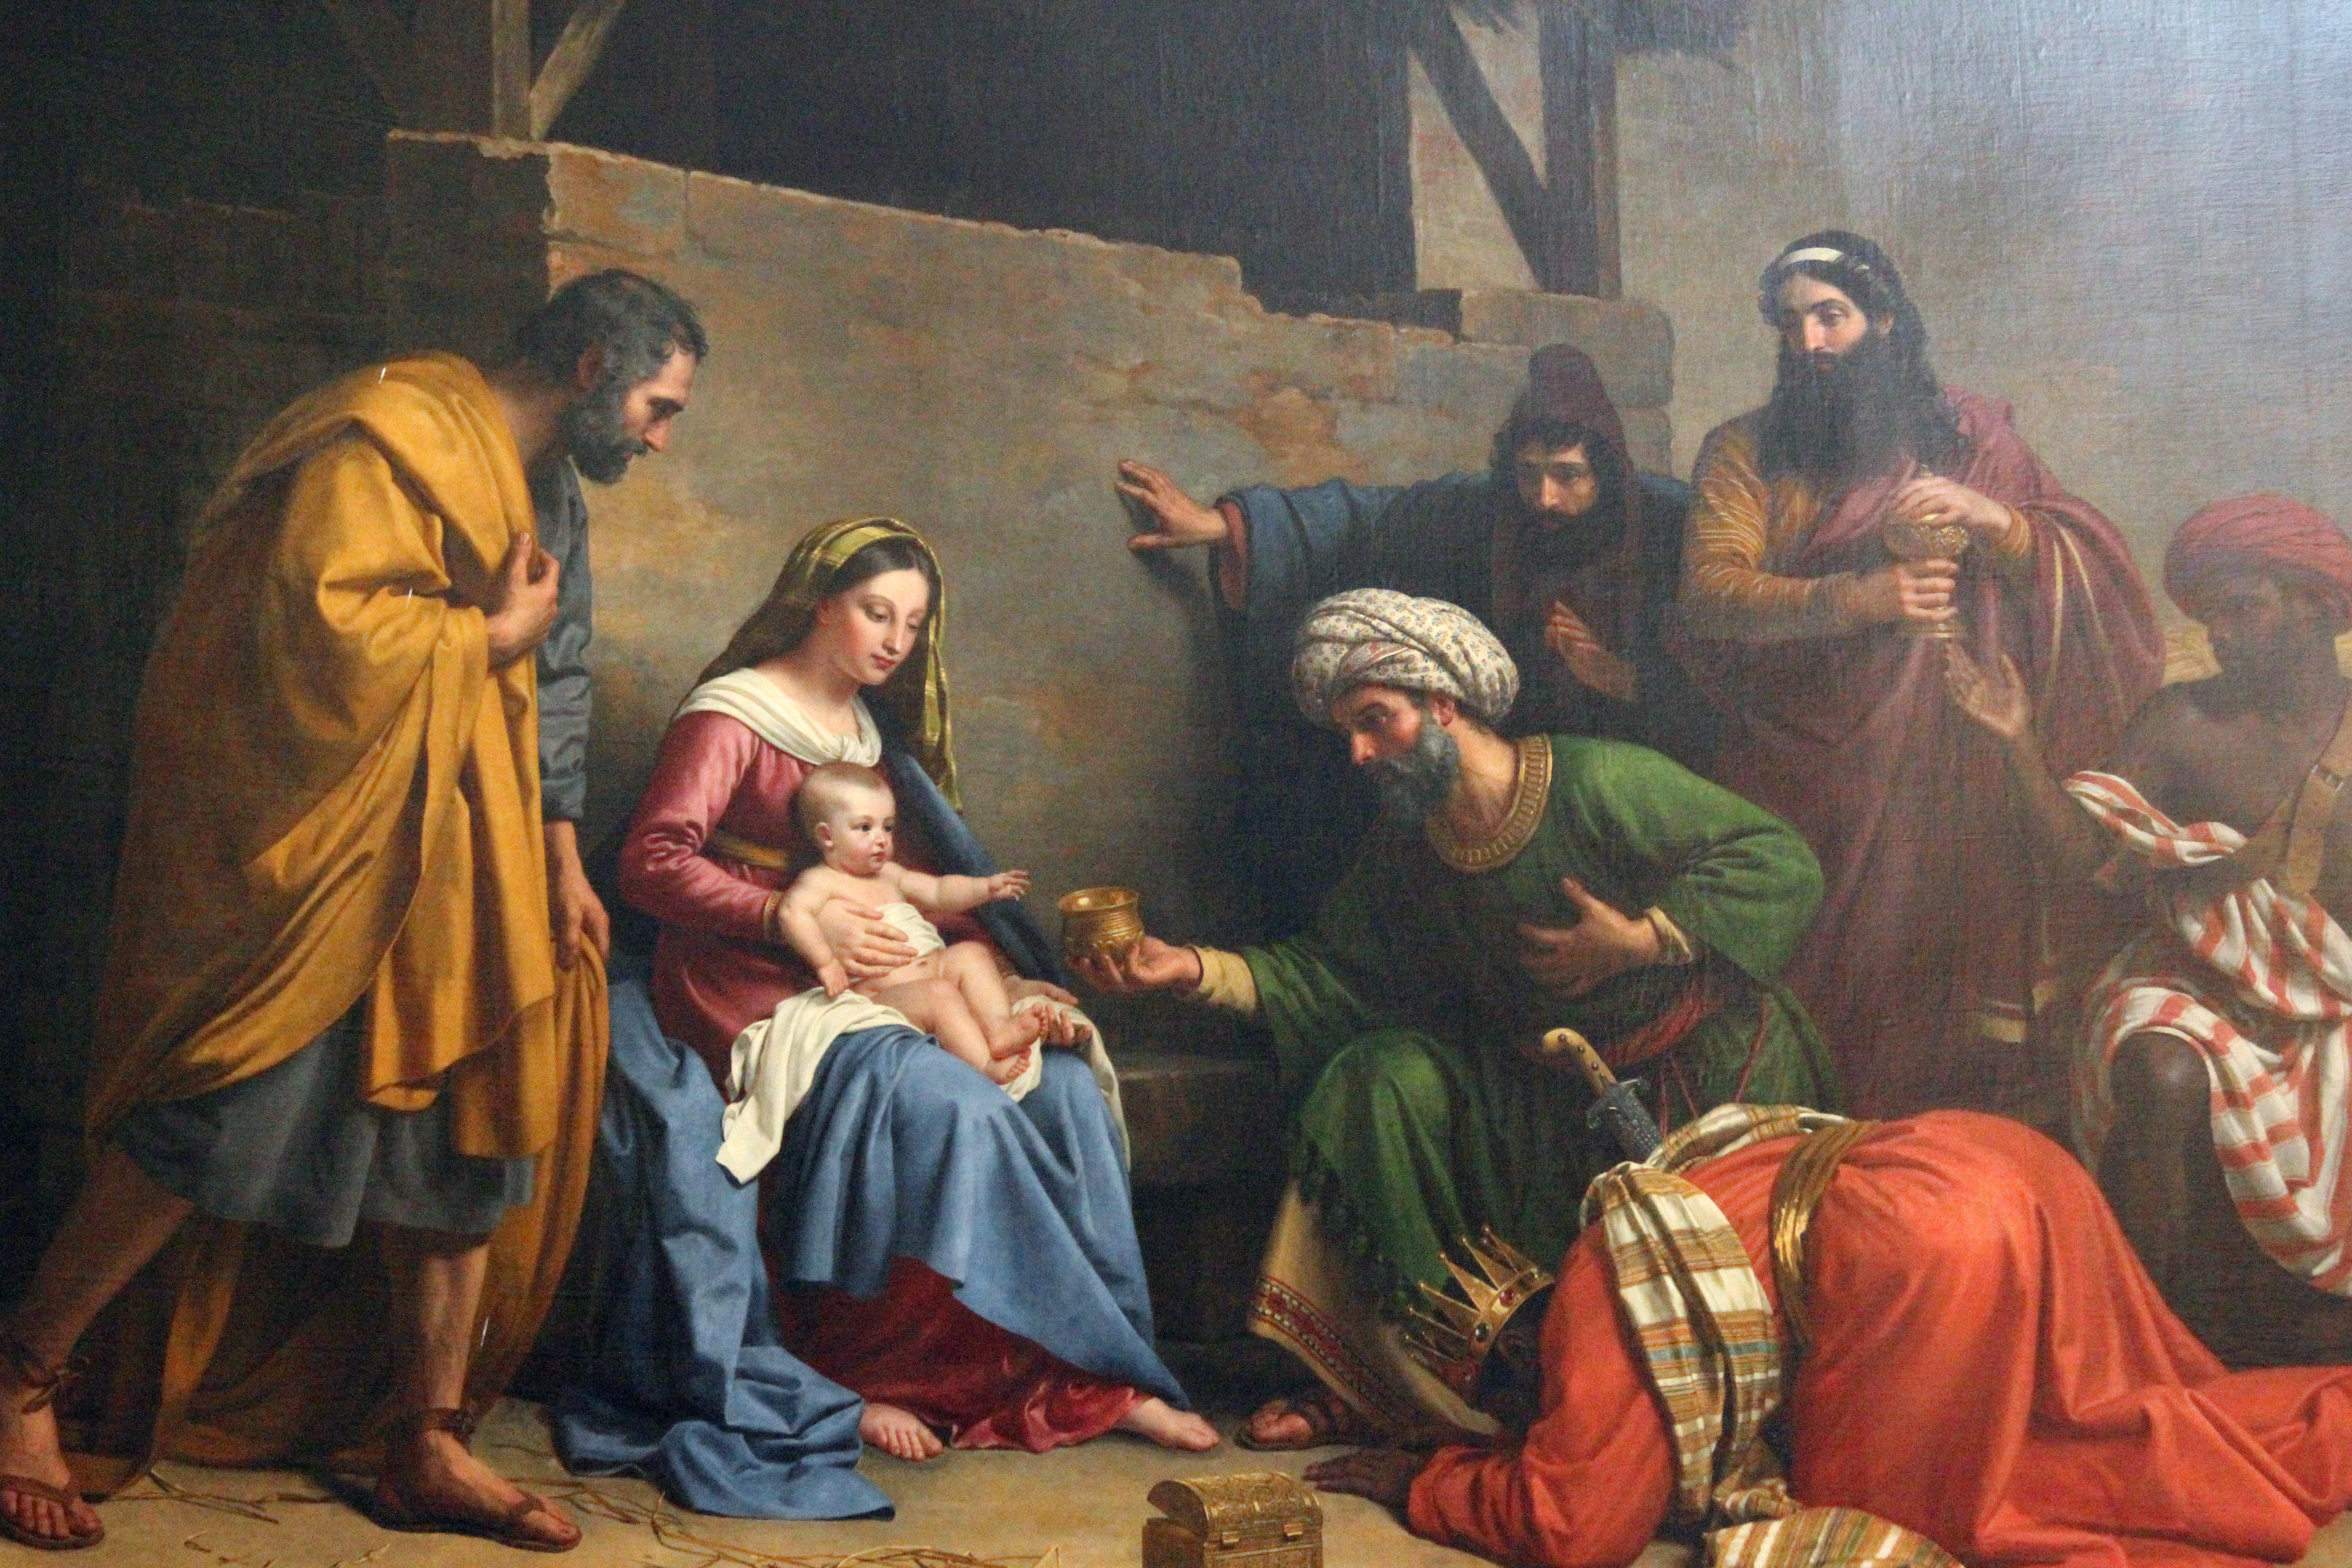 The first Christmas. Zvonimir Atletic, Shutterstock